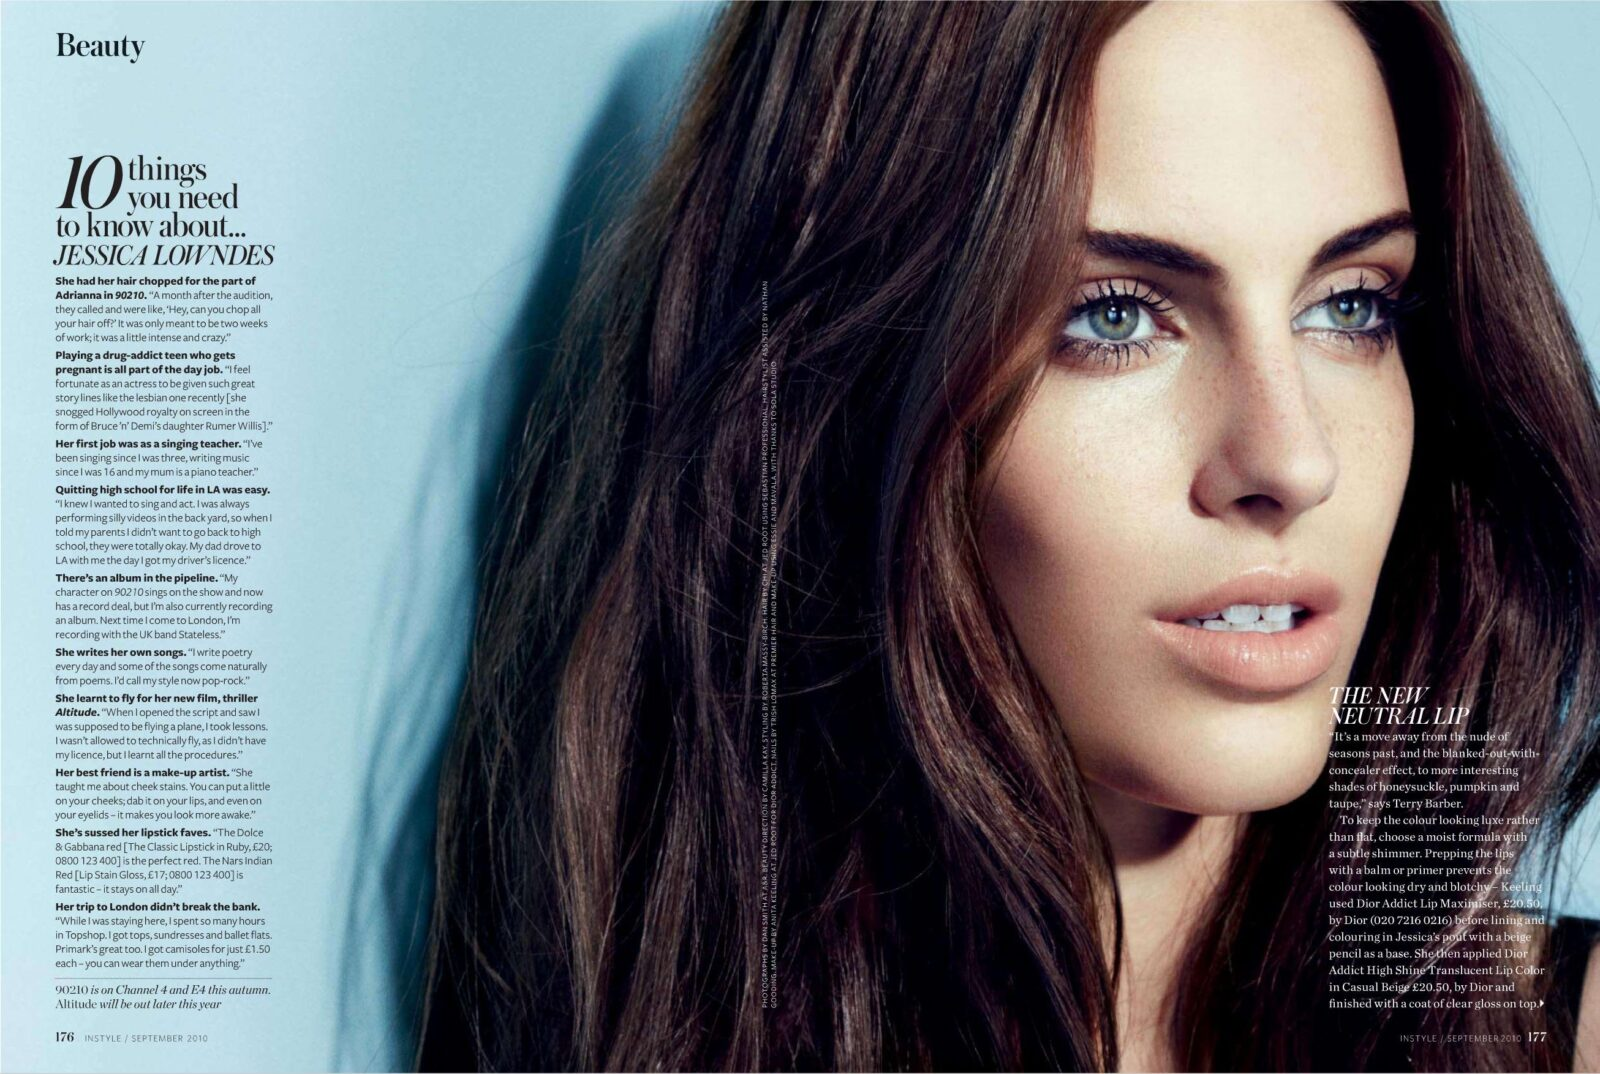 Image 10 things you need to know about Jessica Lowndes